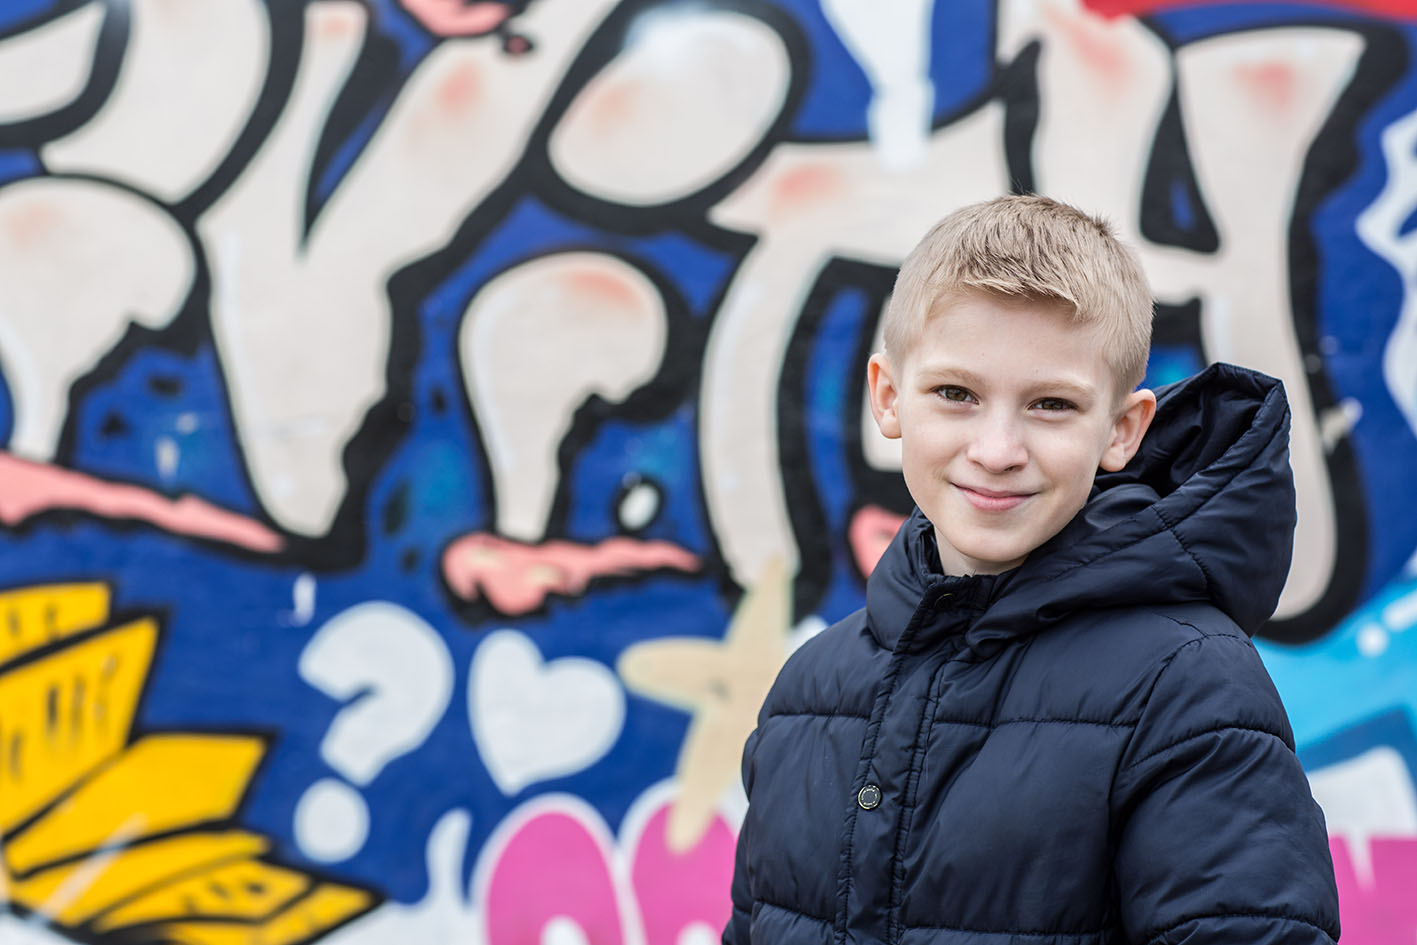 A child in front of a graffiti wall